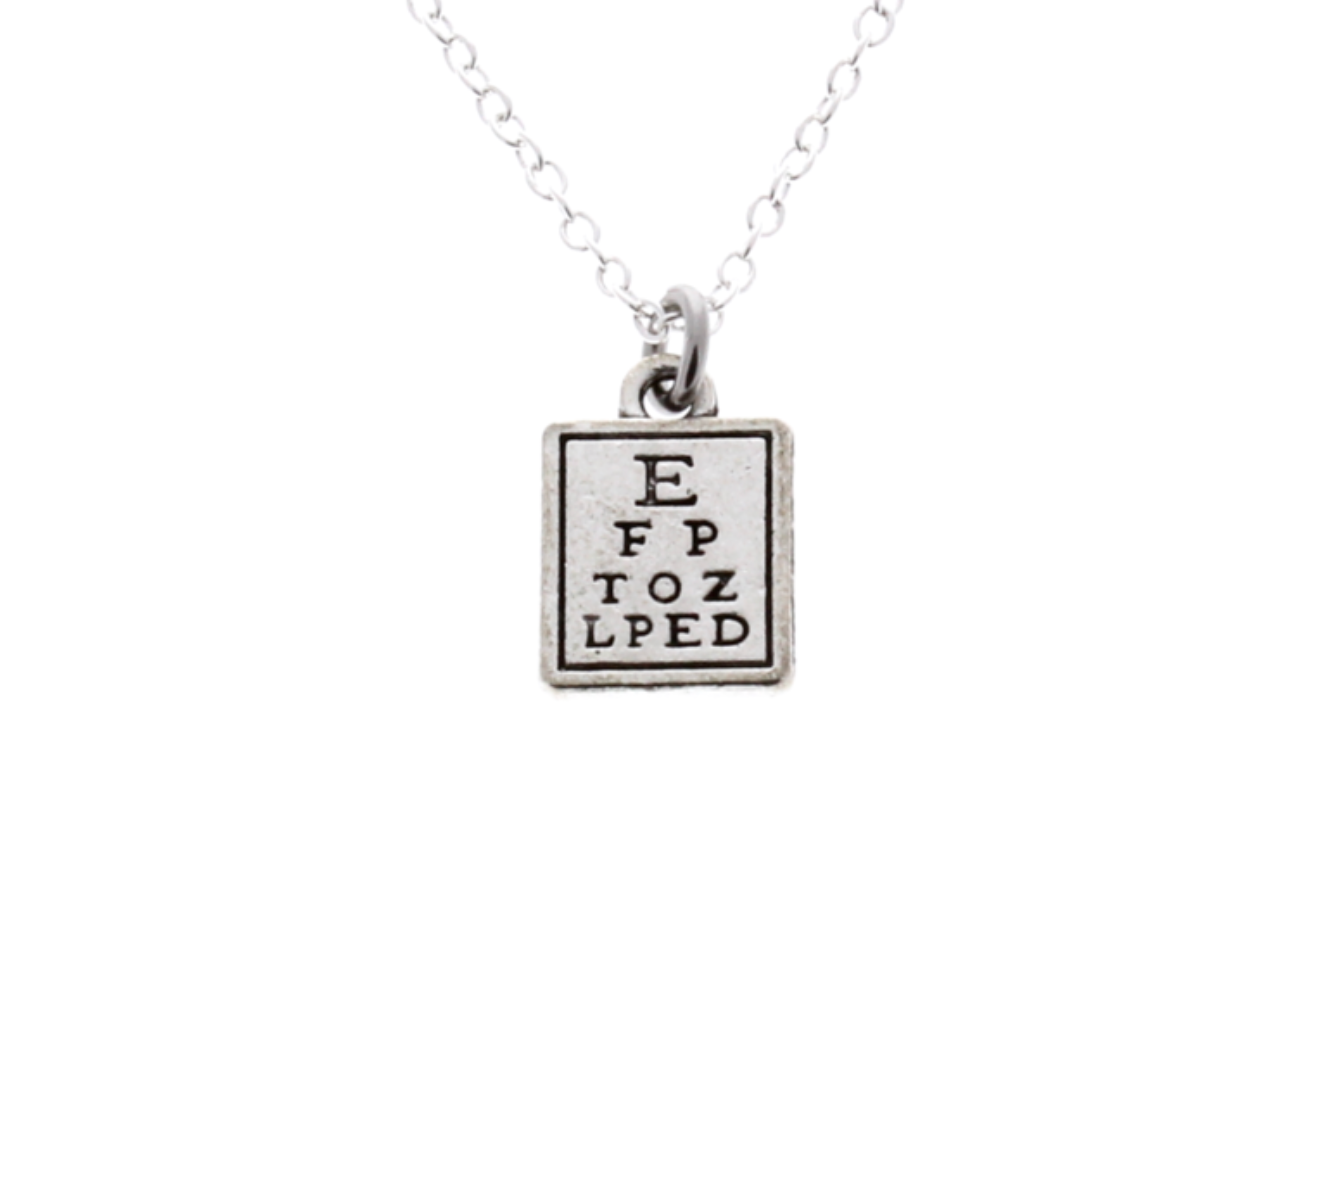 Snellen Eye Chart Necklace